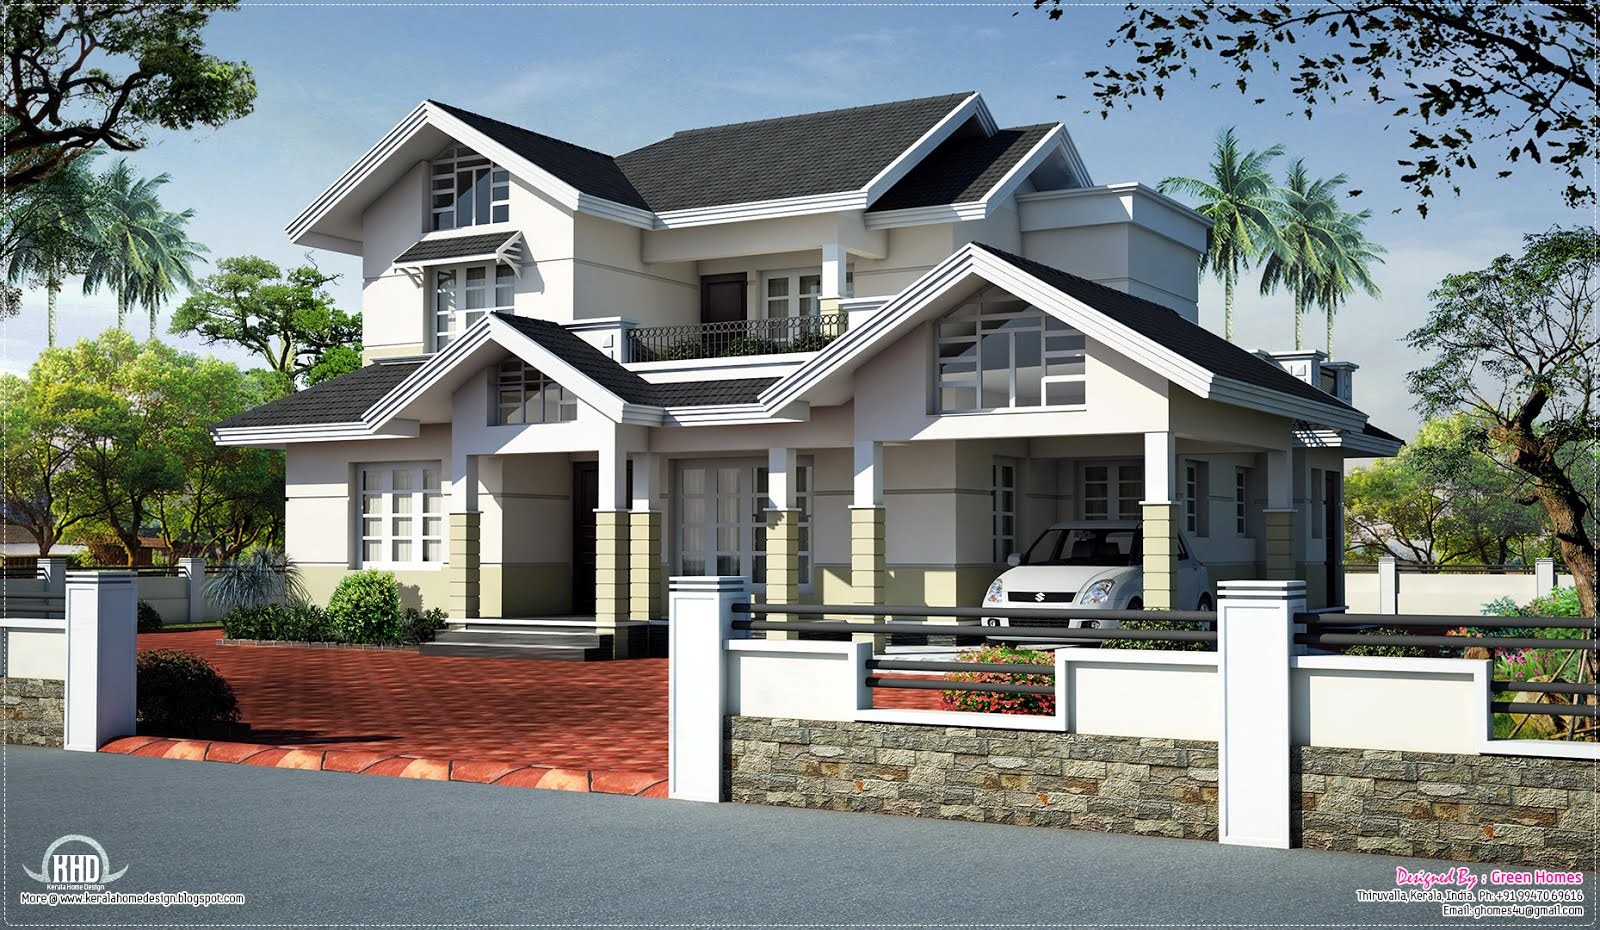 Sloped roof house elevation design kerala home design for Slope home design